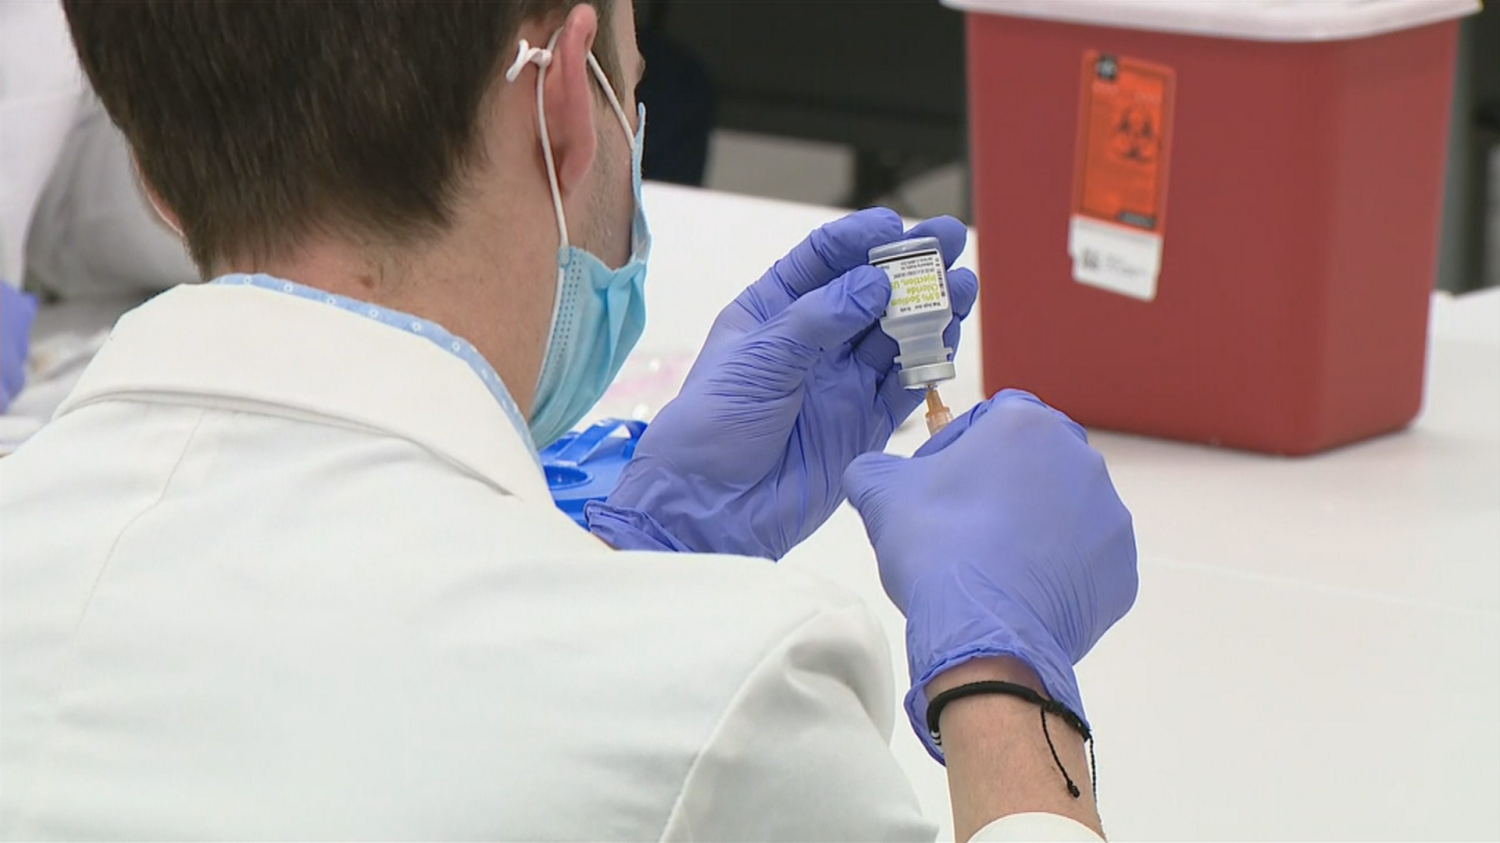 Pennsylvania Facing Shortage Of Moderna COVID-19 Vaccine Shots After Providers Mistakenly Use 2nd Doses As 1st Doses - CBS Philly